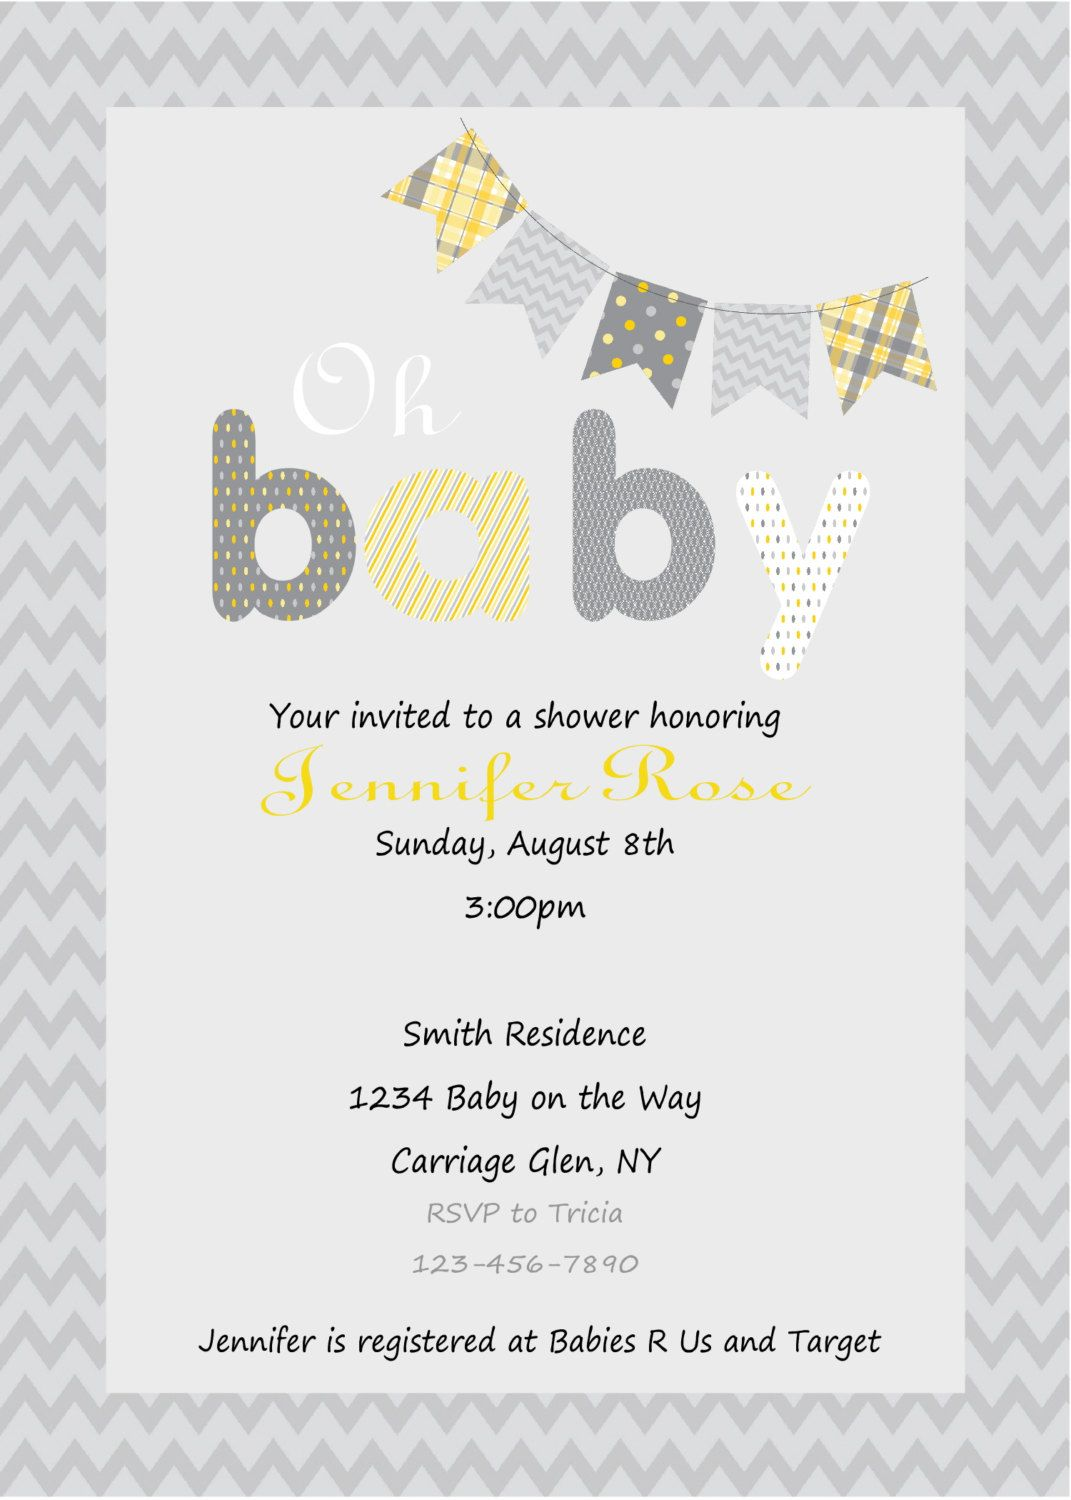 Pin By Gail Mehlan On Gray And Yellow Shower Gray Baby Shower Invitations Cheap Baby Shower Invitations Baby Shower Invitations